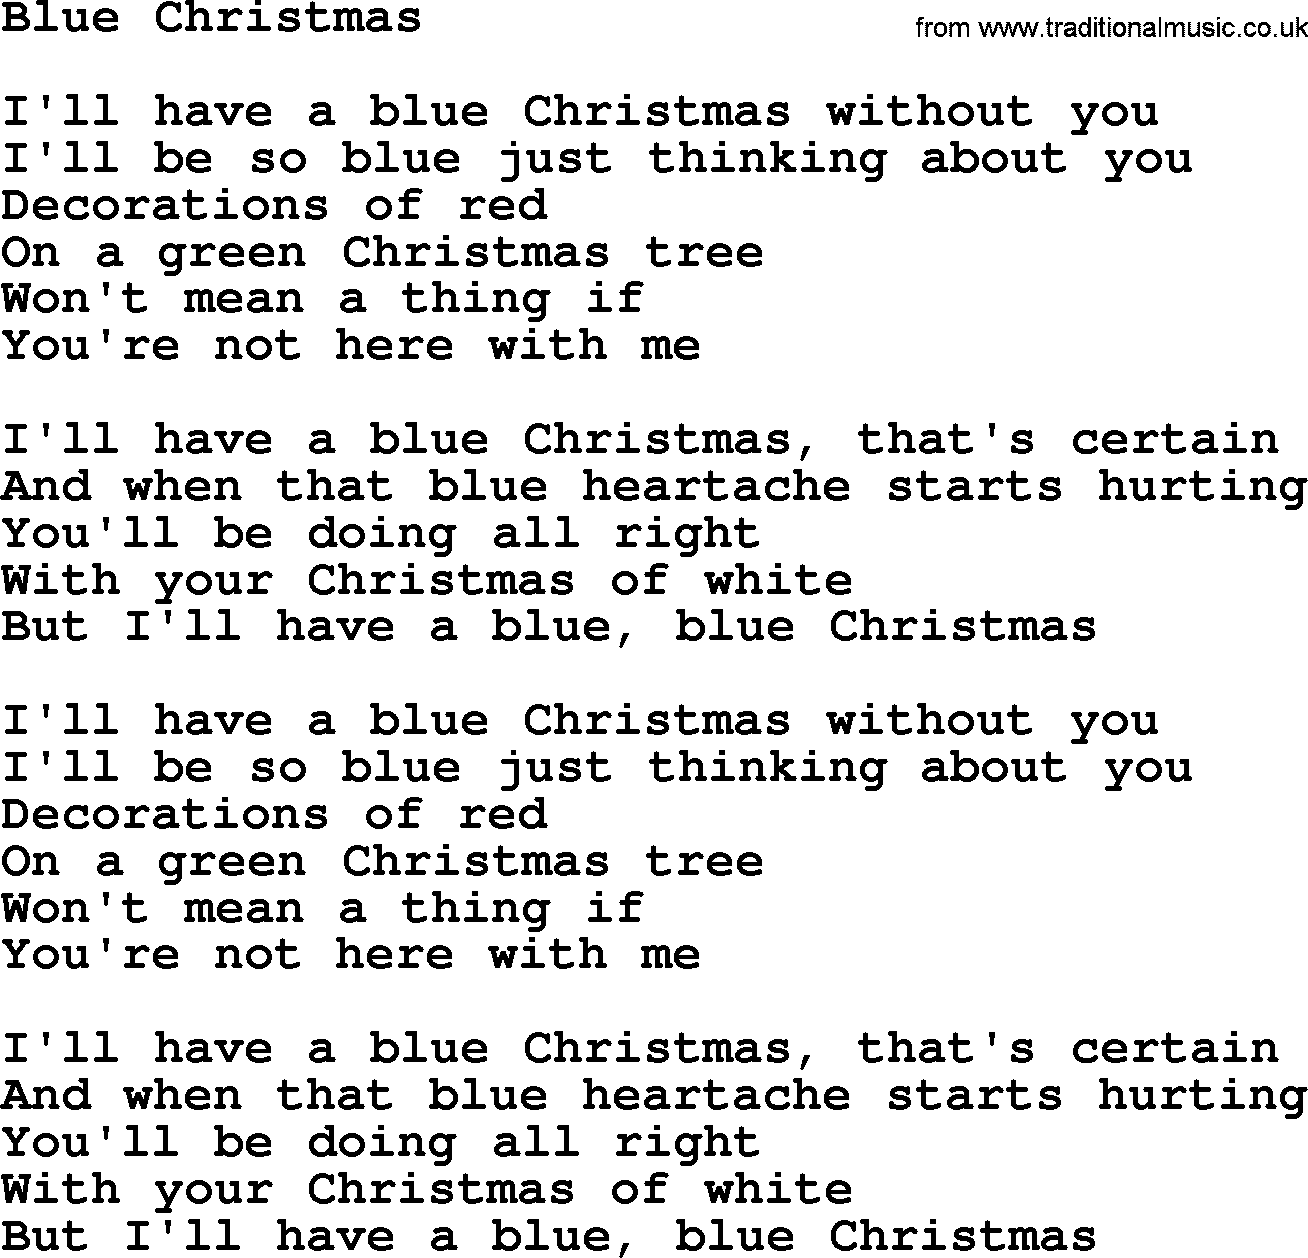 Bruce Springsteen song: Blue Christmas, lyrics